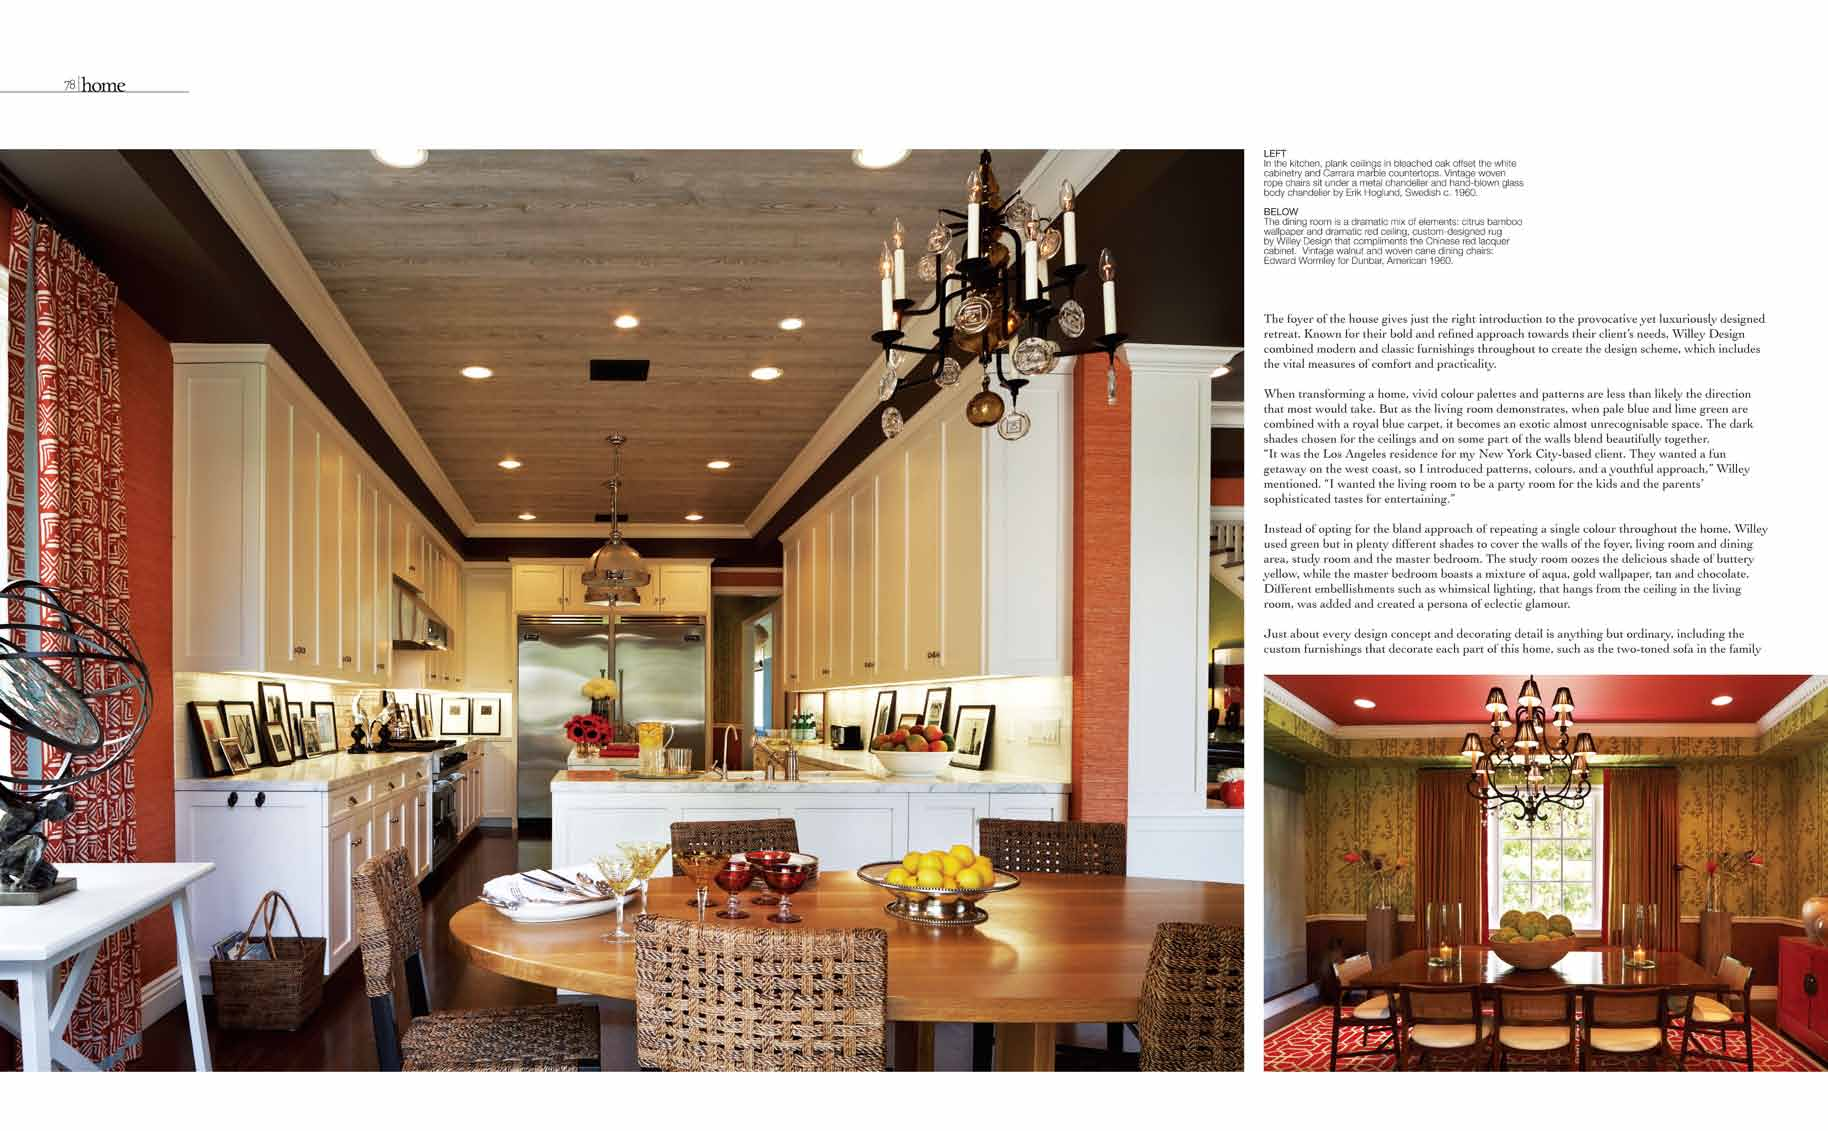 Home Concepts Malaysia 2012 JanFeb - Full Article low-res_Page_3.jpg